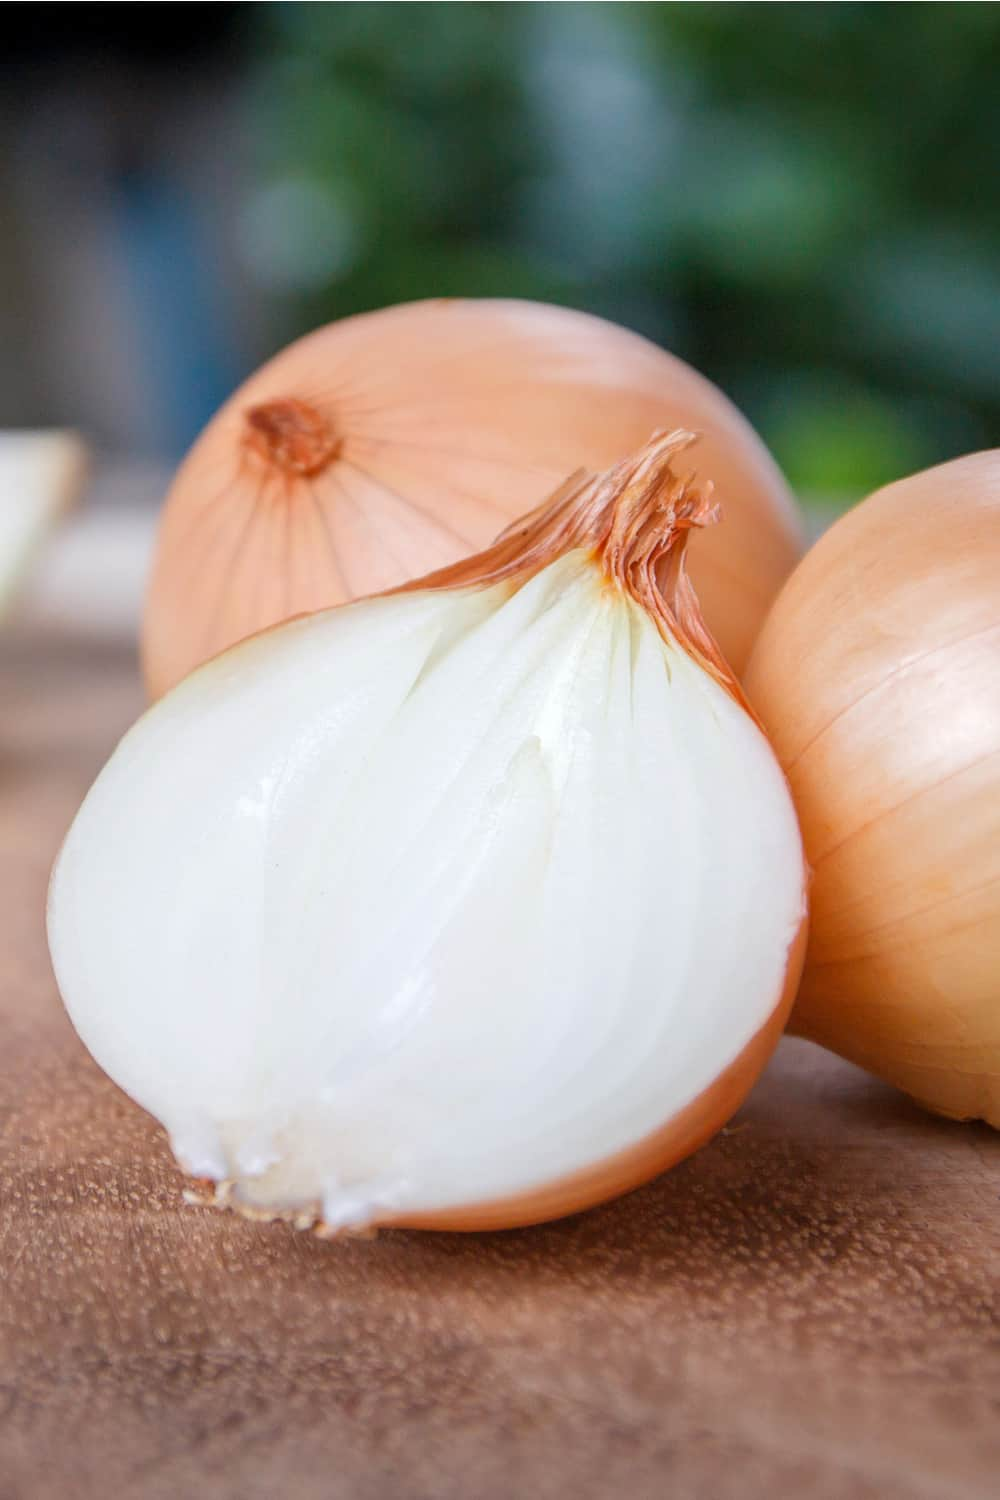 Does Onion Go Bad